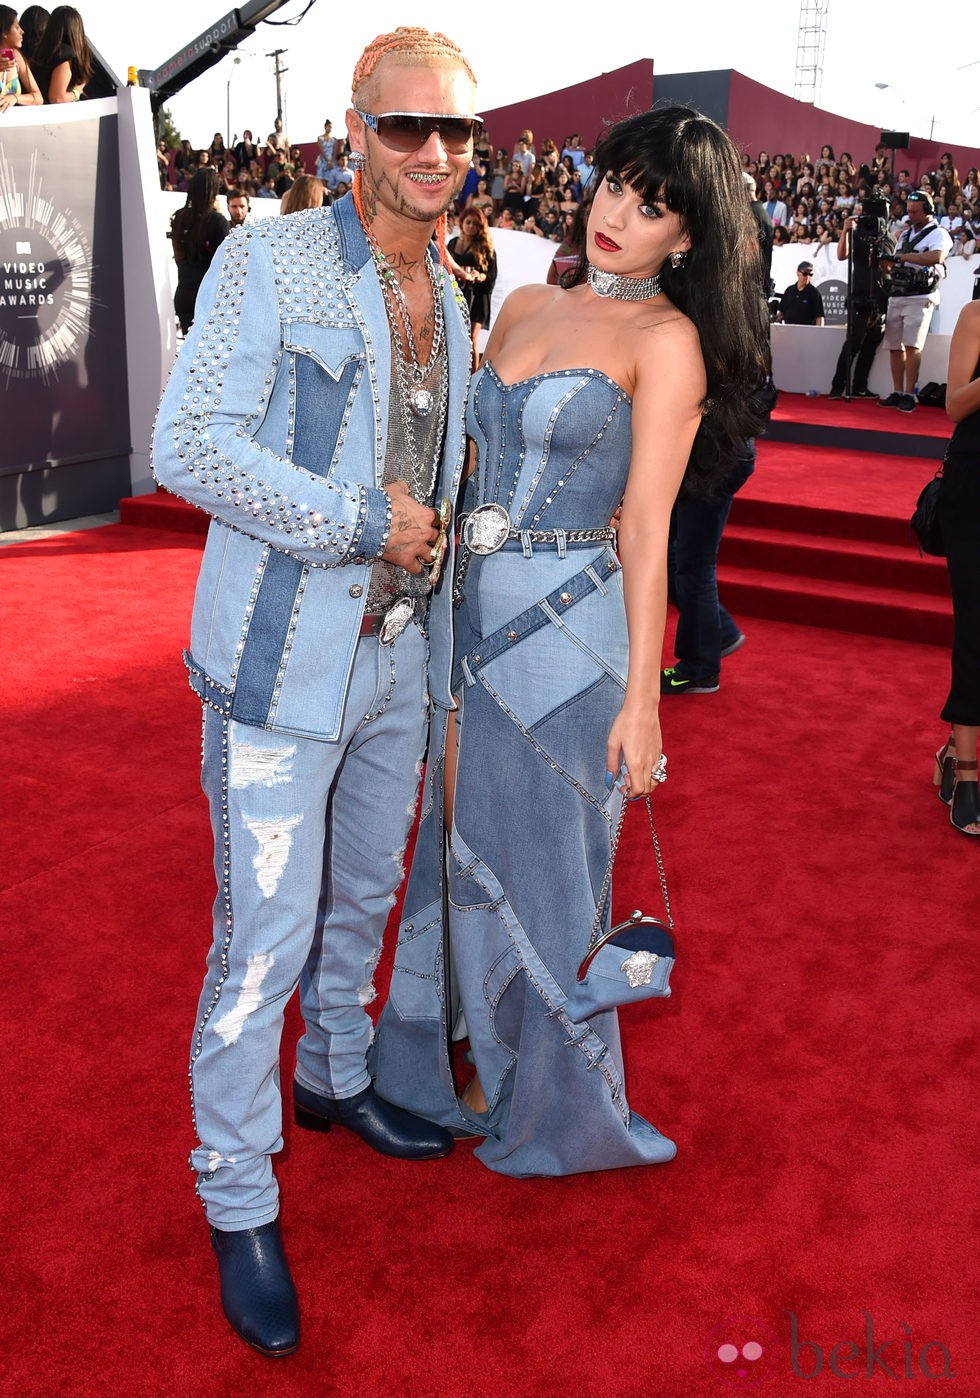 Katy Perry y Riff Raff en la alfombra roja de los MTV Video Music Awards 2014